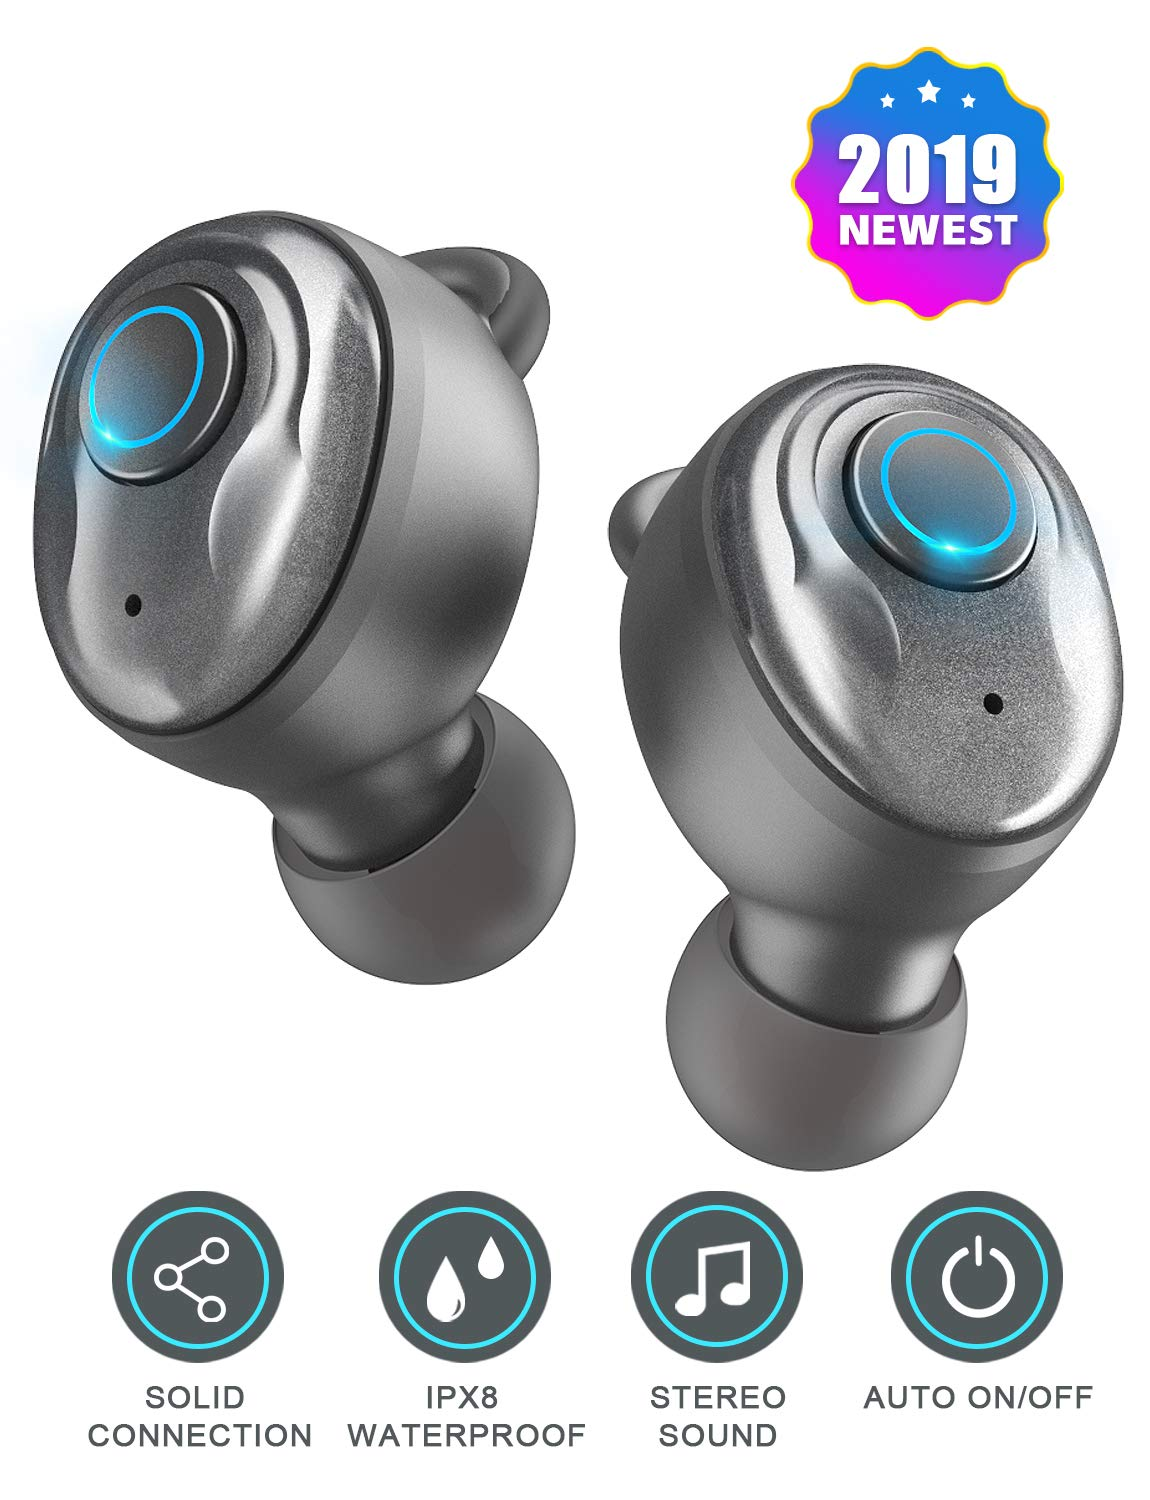 7ecee6e2e40 PeohZarr Wireless Earbuds Bluetooth Earbuds V5.0 with Charging Case, 3D  Stereo Pro Sound, Noise Canceling Earphones with Built-in Mic and MONO  Mode, ...